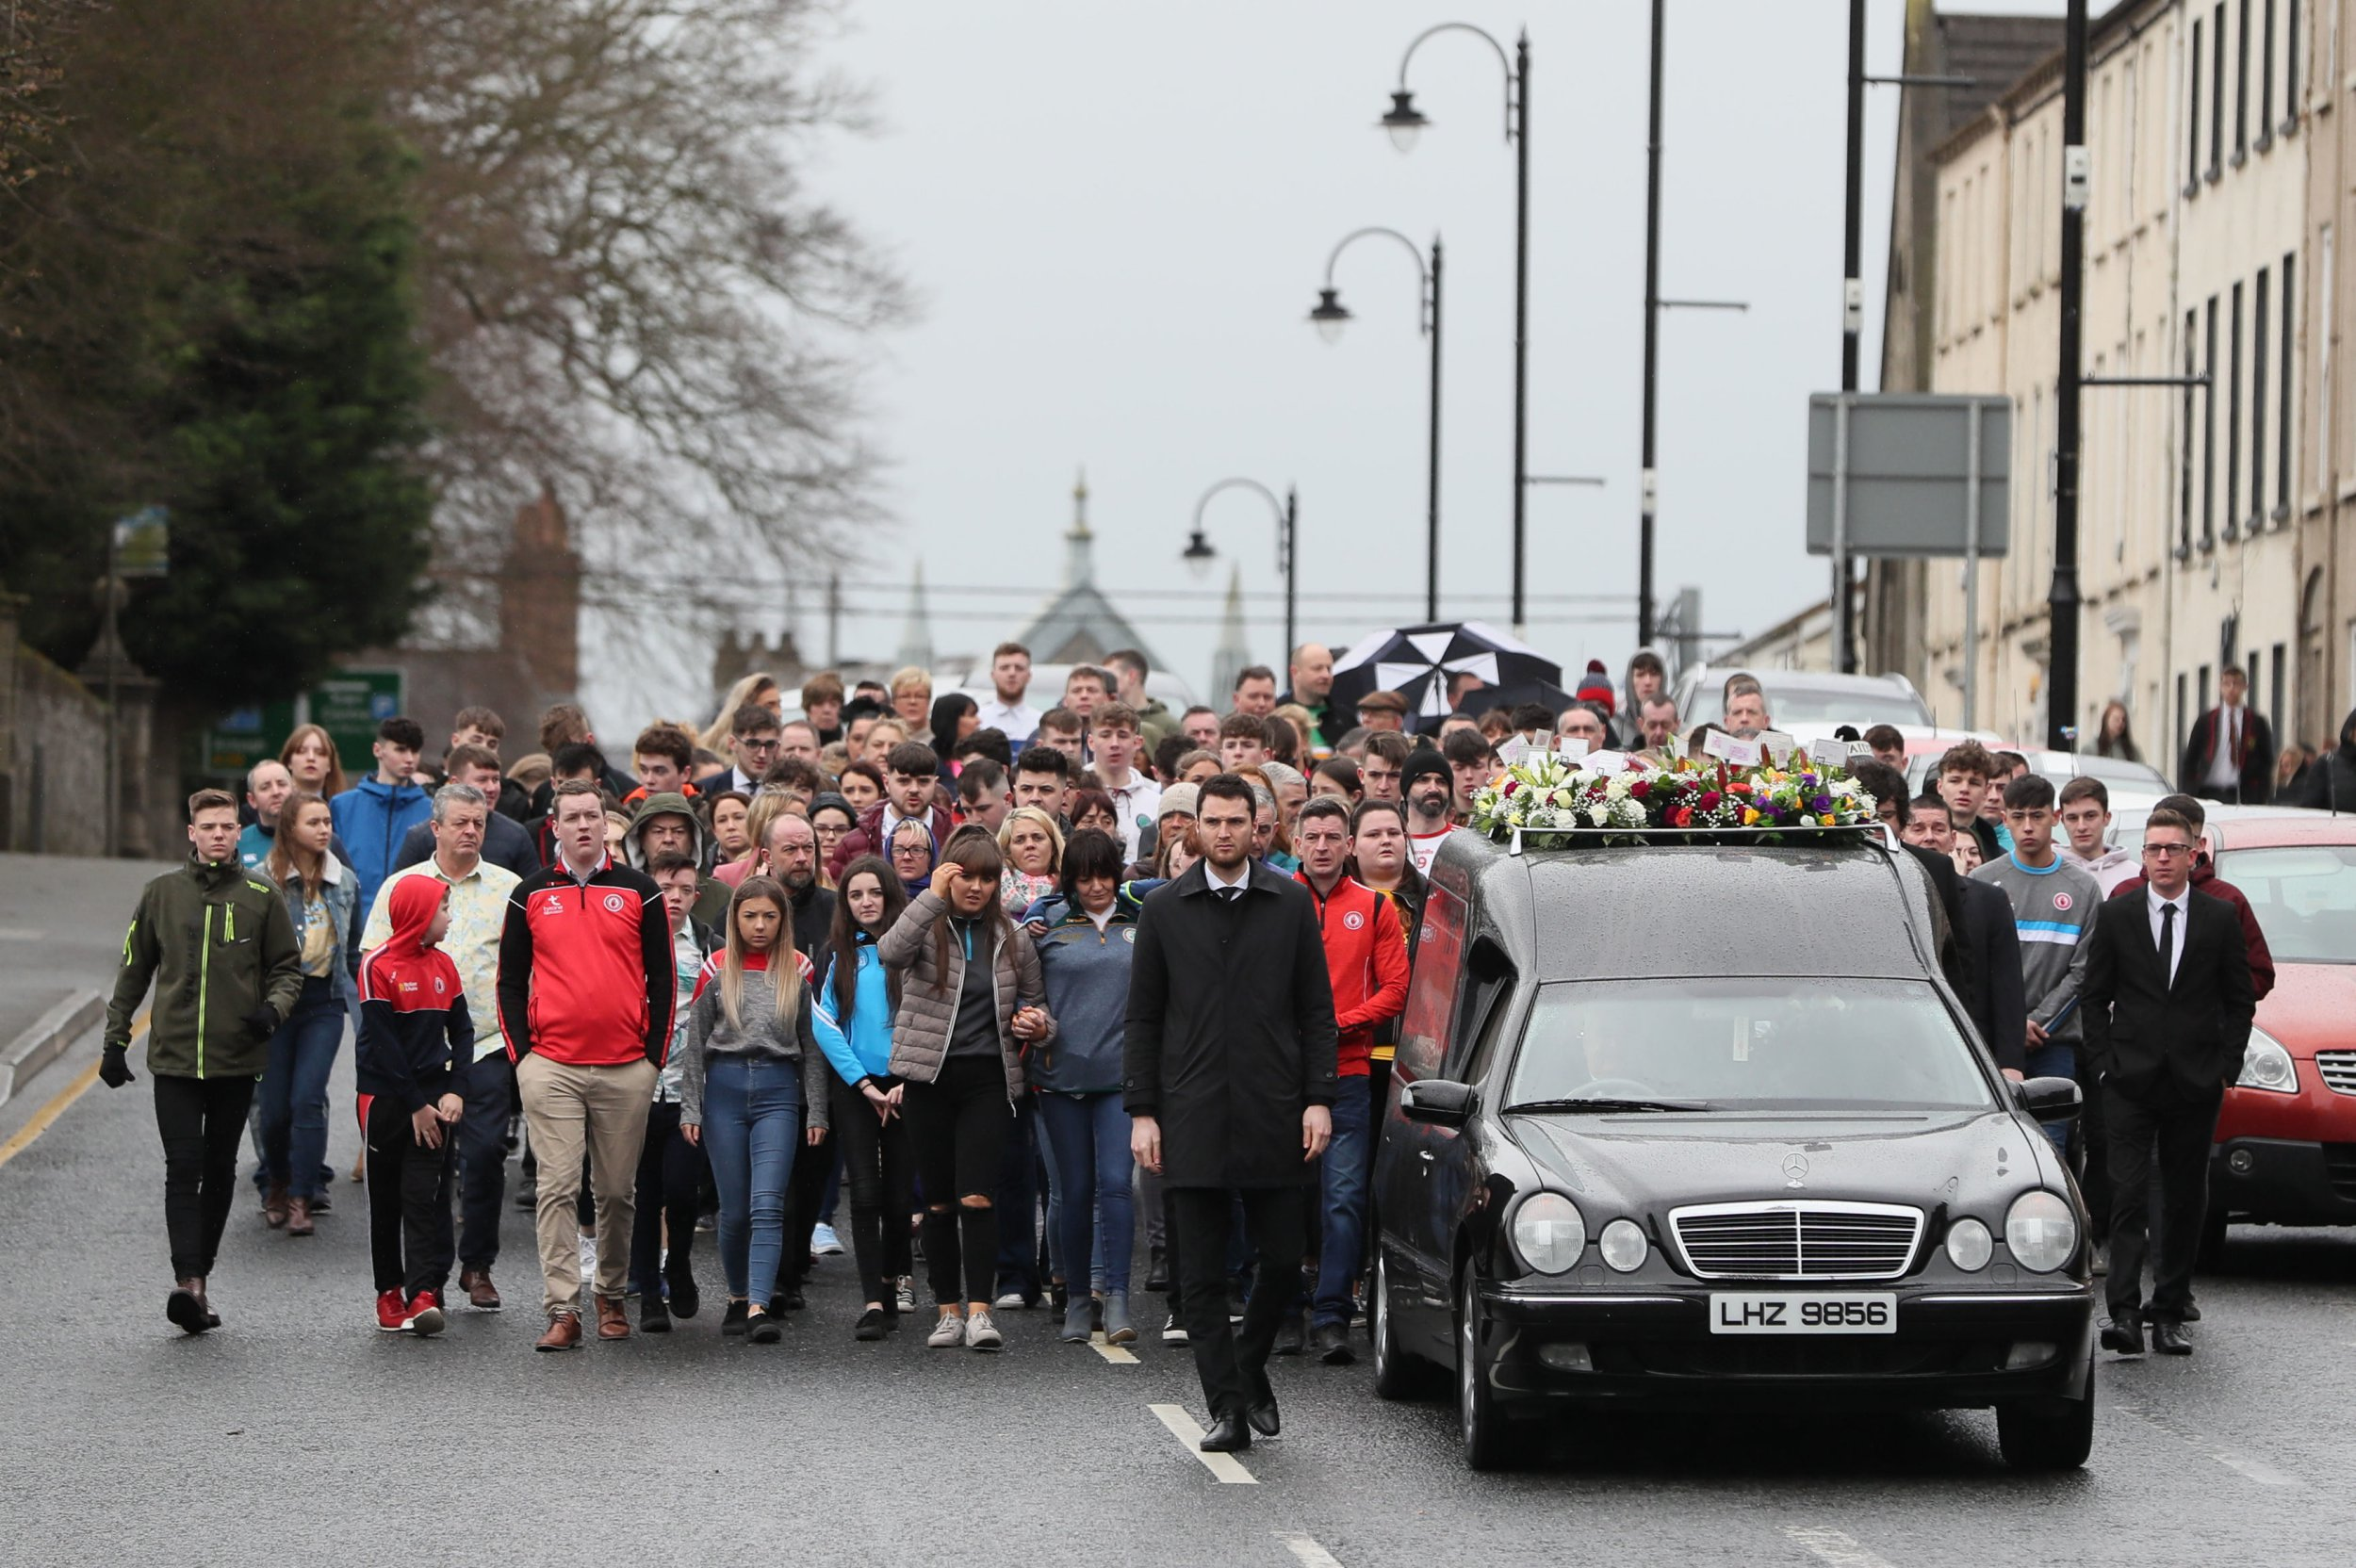 The funeral cortege arriving at St Patrick's Church, Dungannon for the funeral of Morgan Barnard. PRESS ASSOCIATION Photo. Picture date: Friday March 22, 2019. Teenagers Lauren Bullock, Connor Currie and Morgan Barnard died after a crush at the Greenvale Hotel in Cookstown, Co Tyrone, on Sunday. See PA story ULSTER Cookstown. Photo credit should read: Brian Lawless/PA Wire